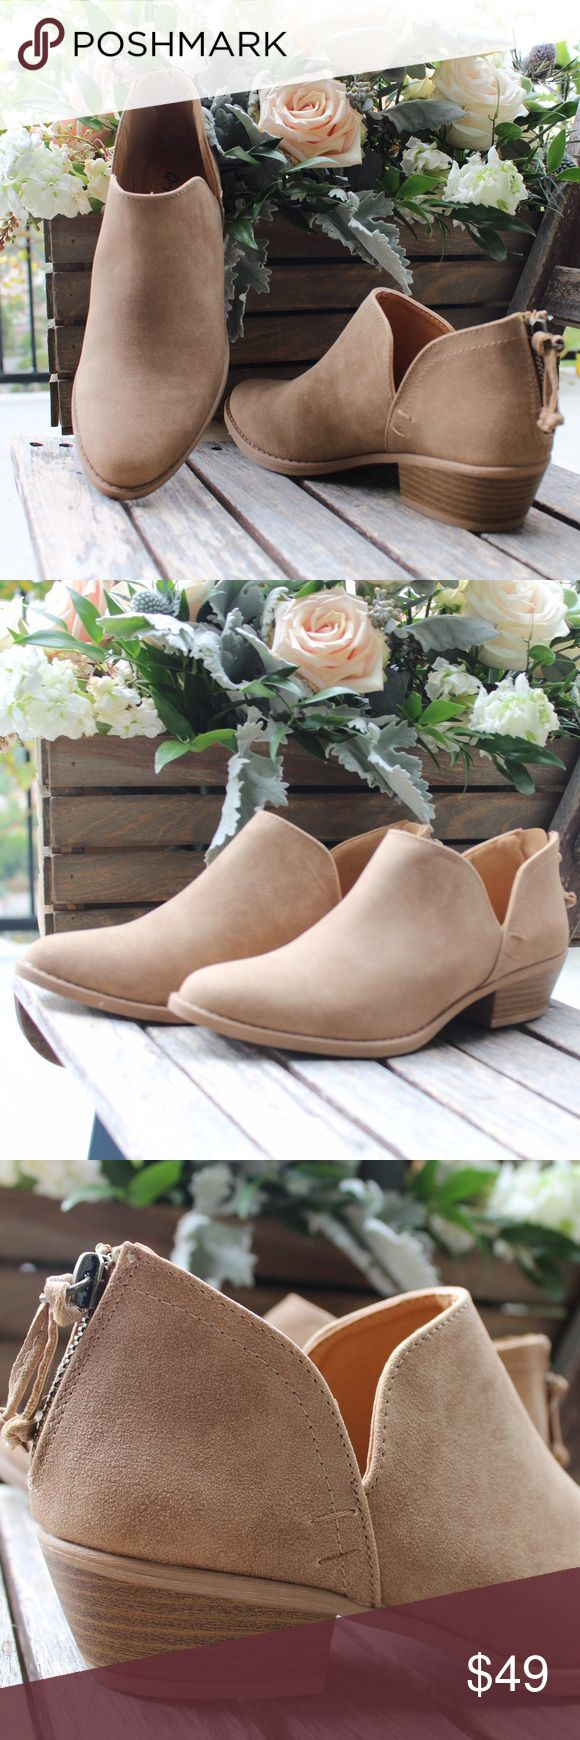 Tassel Low Stack Heel Distressed Ankle Boot 💛 Absolutely perfect for any occasion.💛Brand New In Box 💛Heel Height 1.25 Inches💛 Rear Zip💛 True to Size💛 Vegan Materials 💛 Feel free to ask questions! 🌸www.thefairyden.com🌸 The Fairy Den Shoes Ankle Boots & Booties